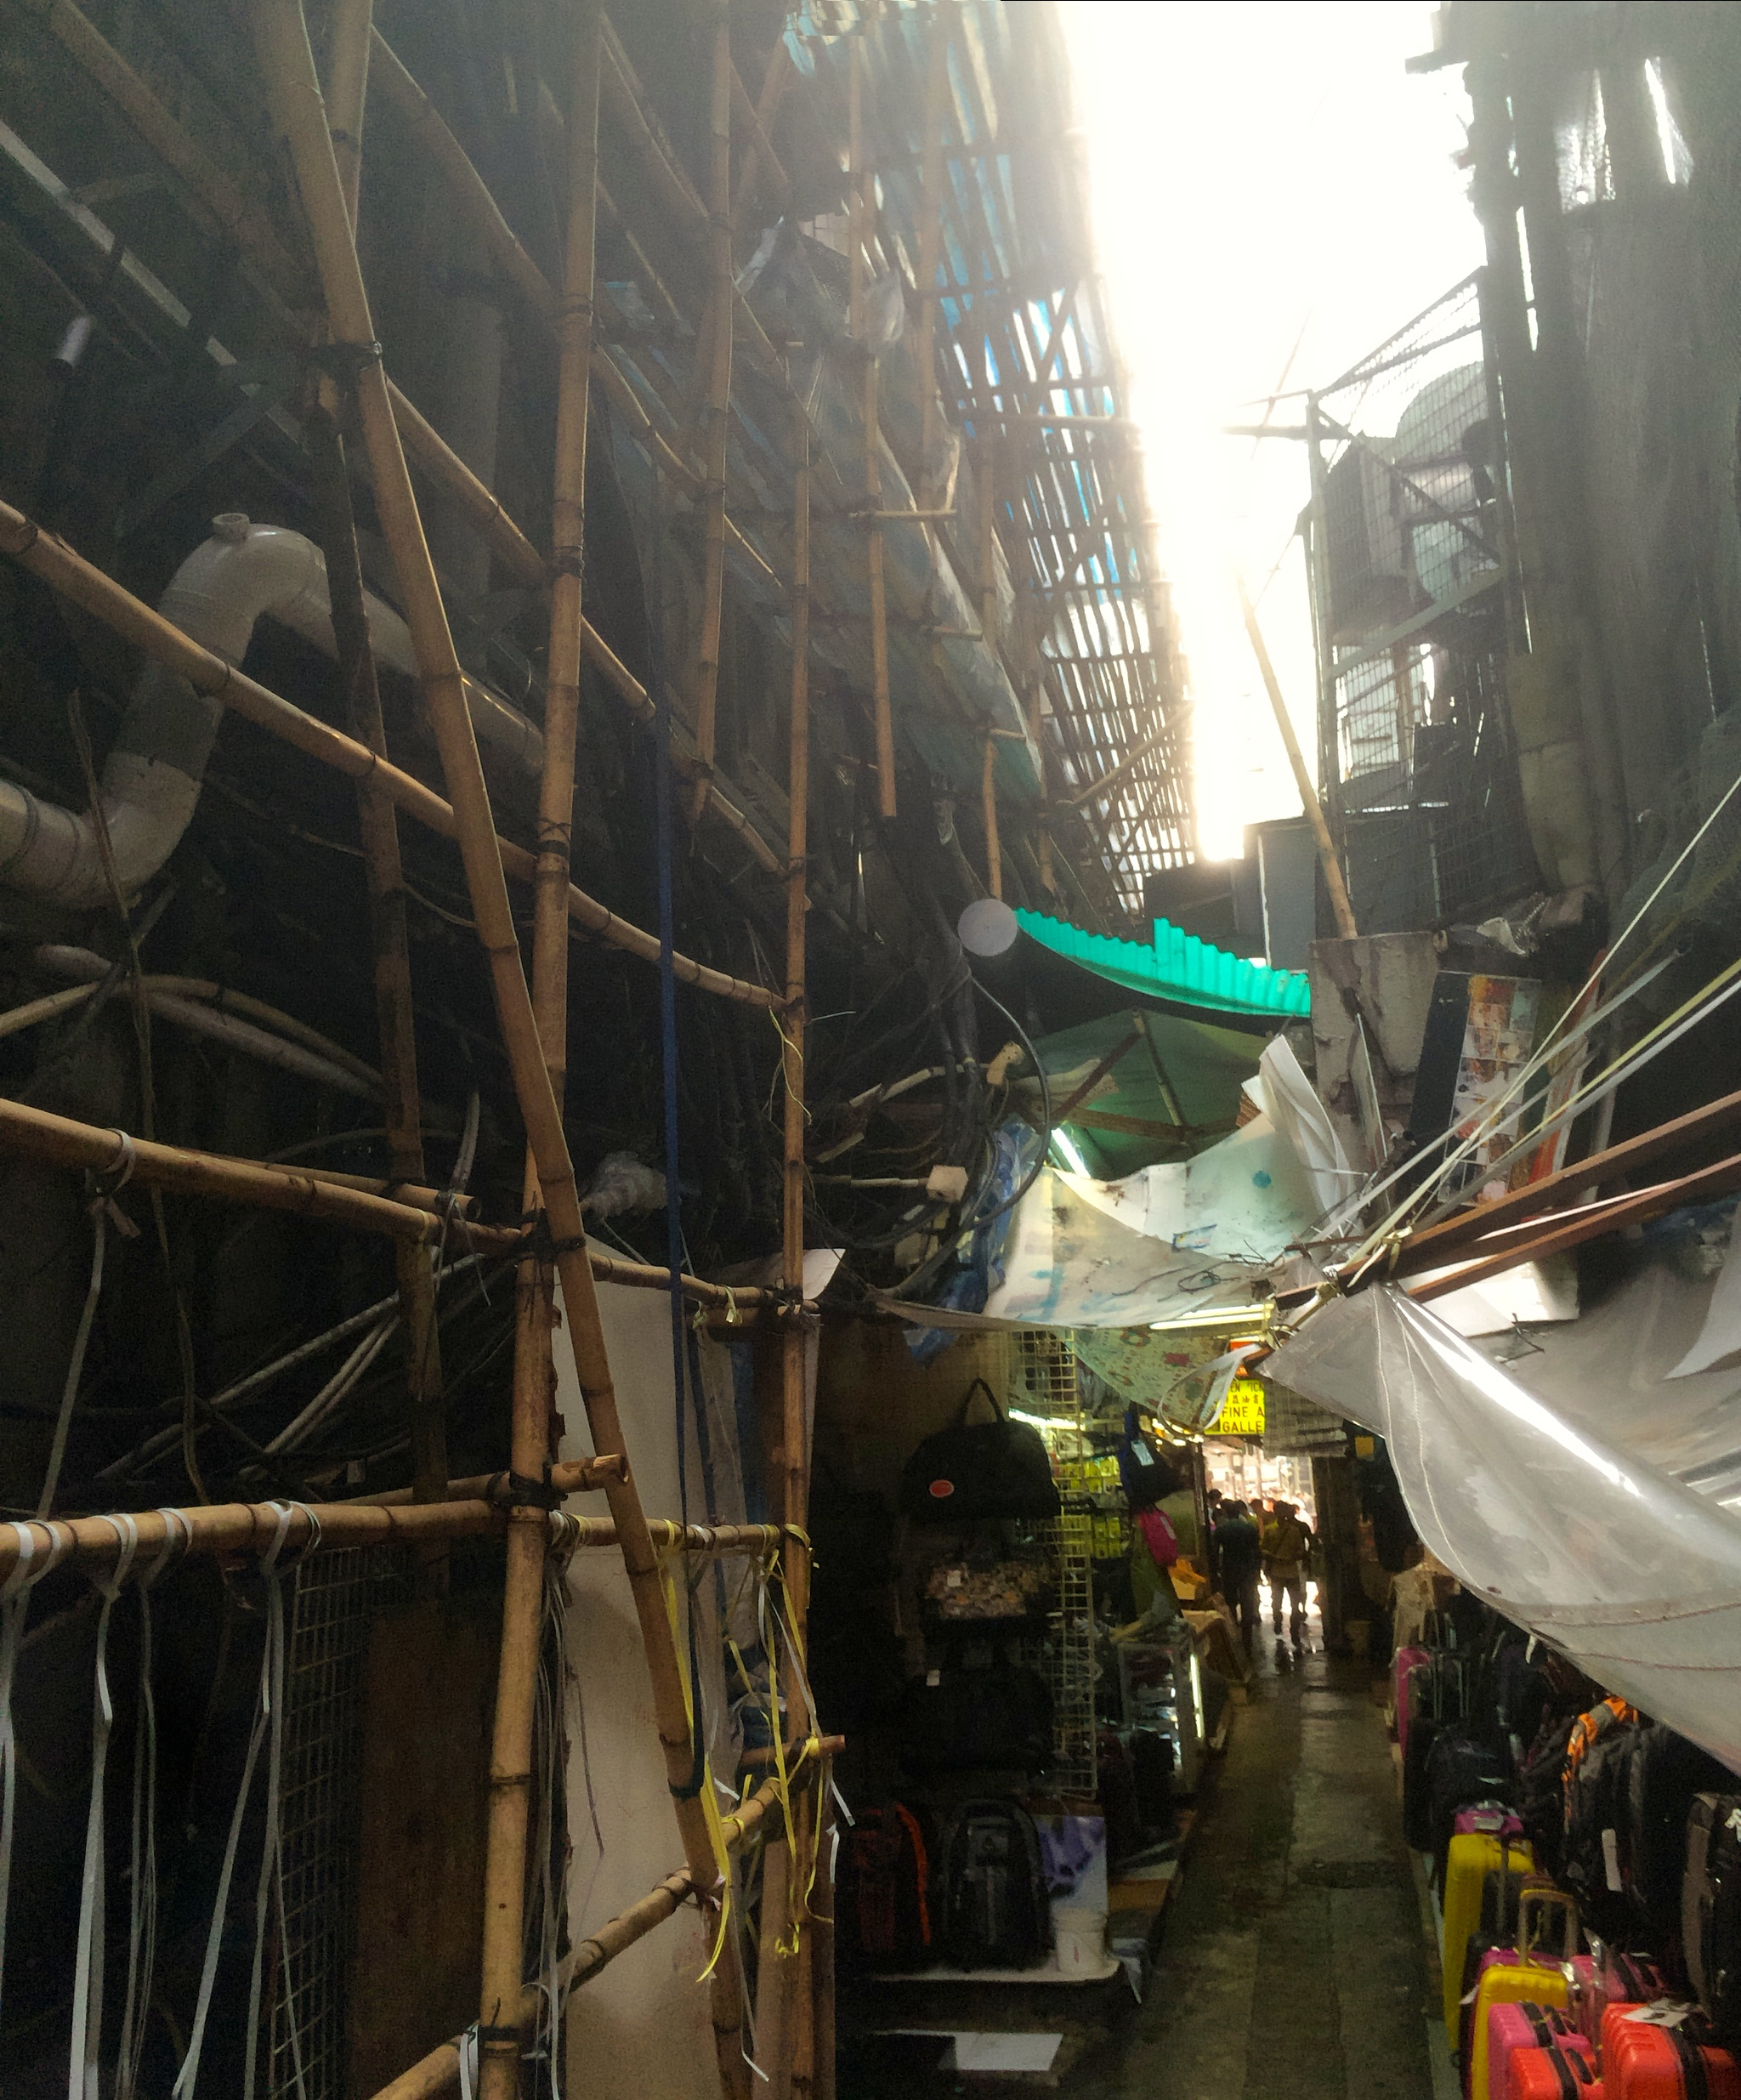 we decided to walk down this alley...and discovered this....a rats nest of bamboo scaffolding, tarps, and poorly rigged electrical wires. creepy, yes....and kinda cool.